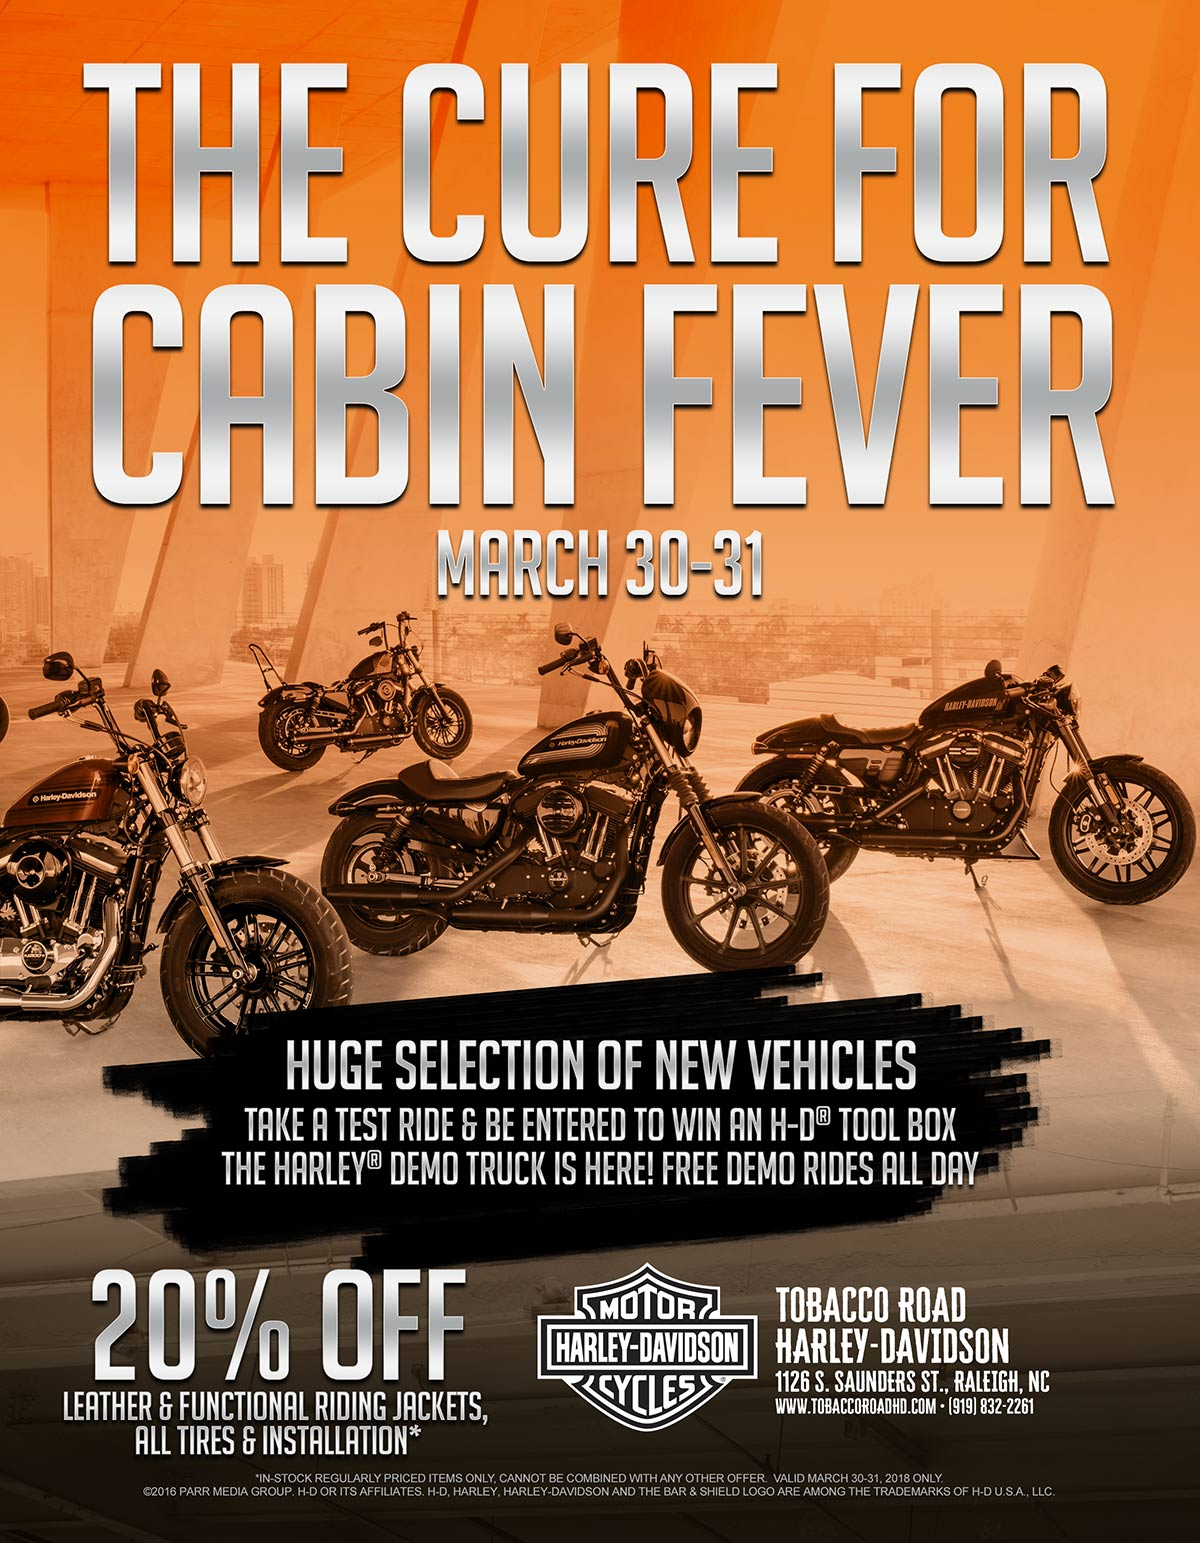 The Cure For Cabin Fever Event Tobacco Road Harley Davidson Events